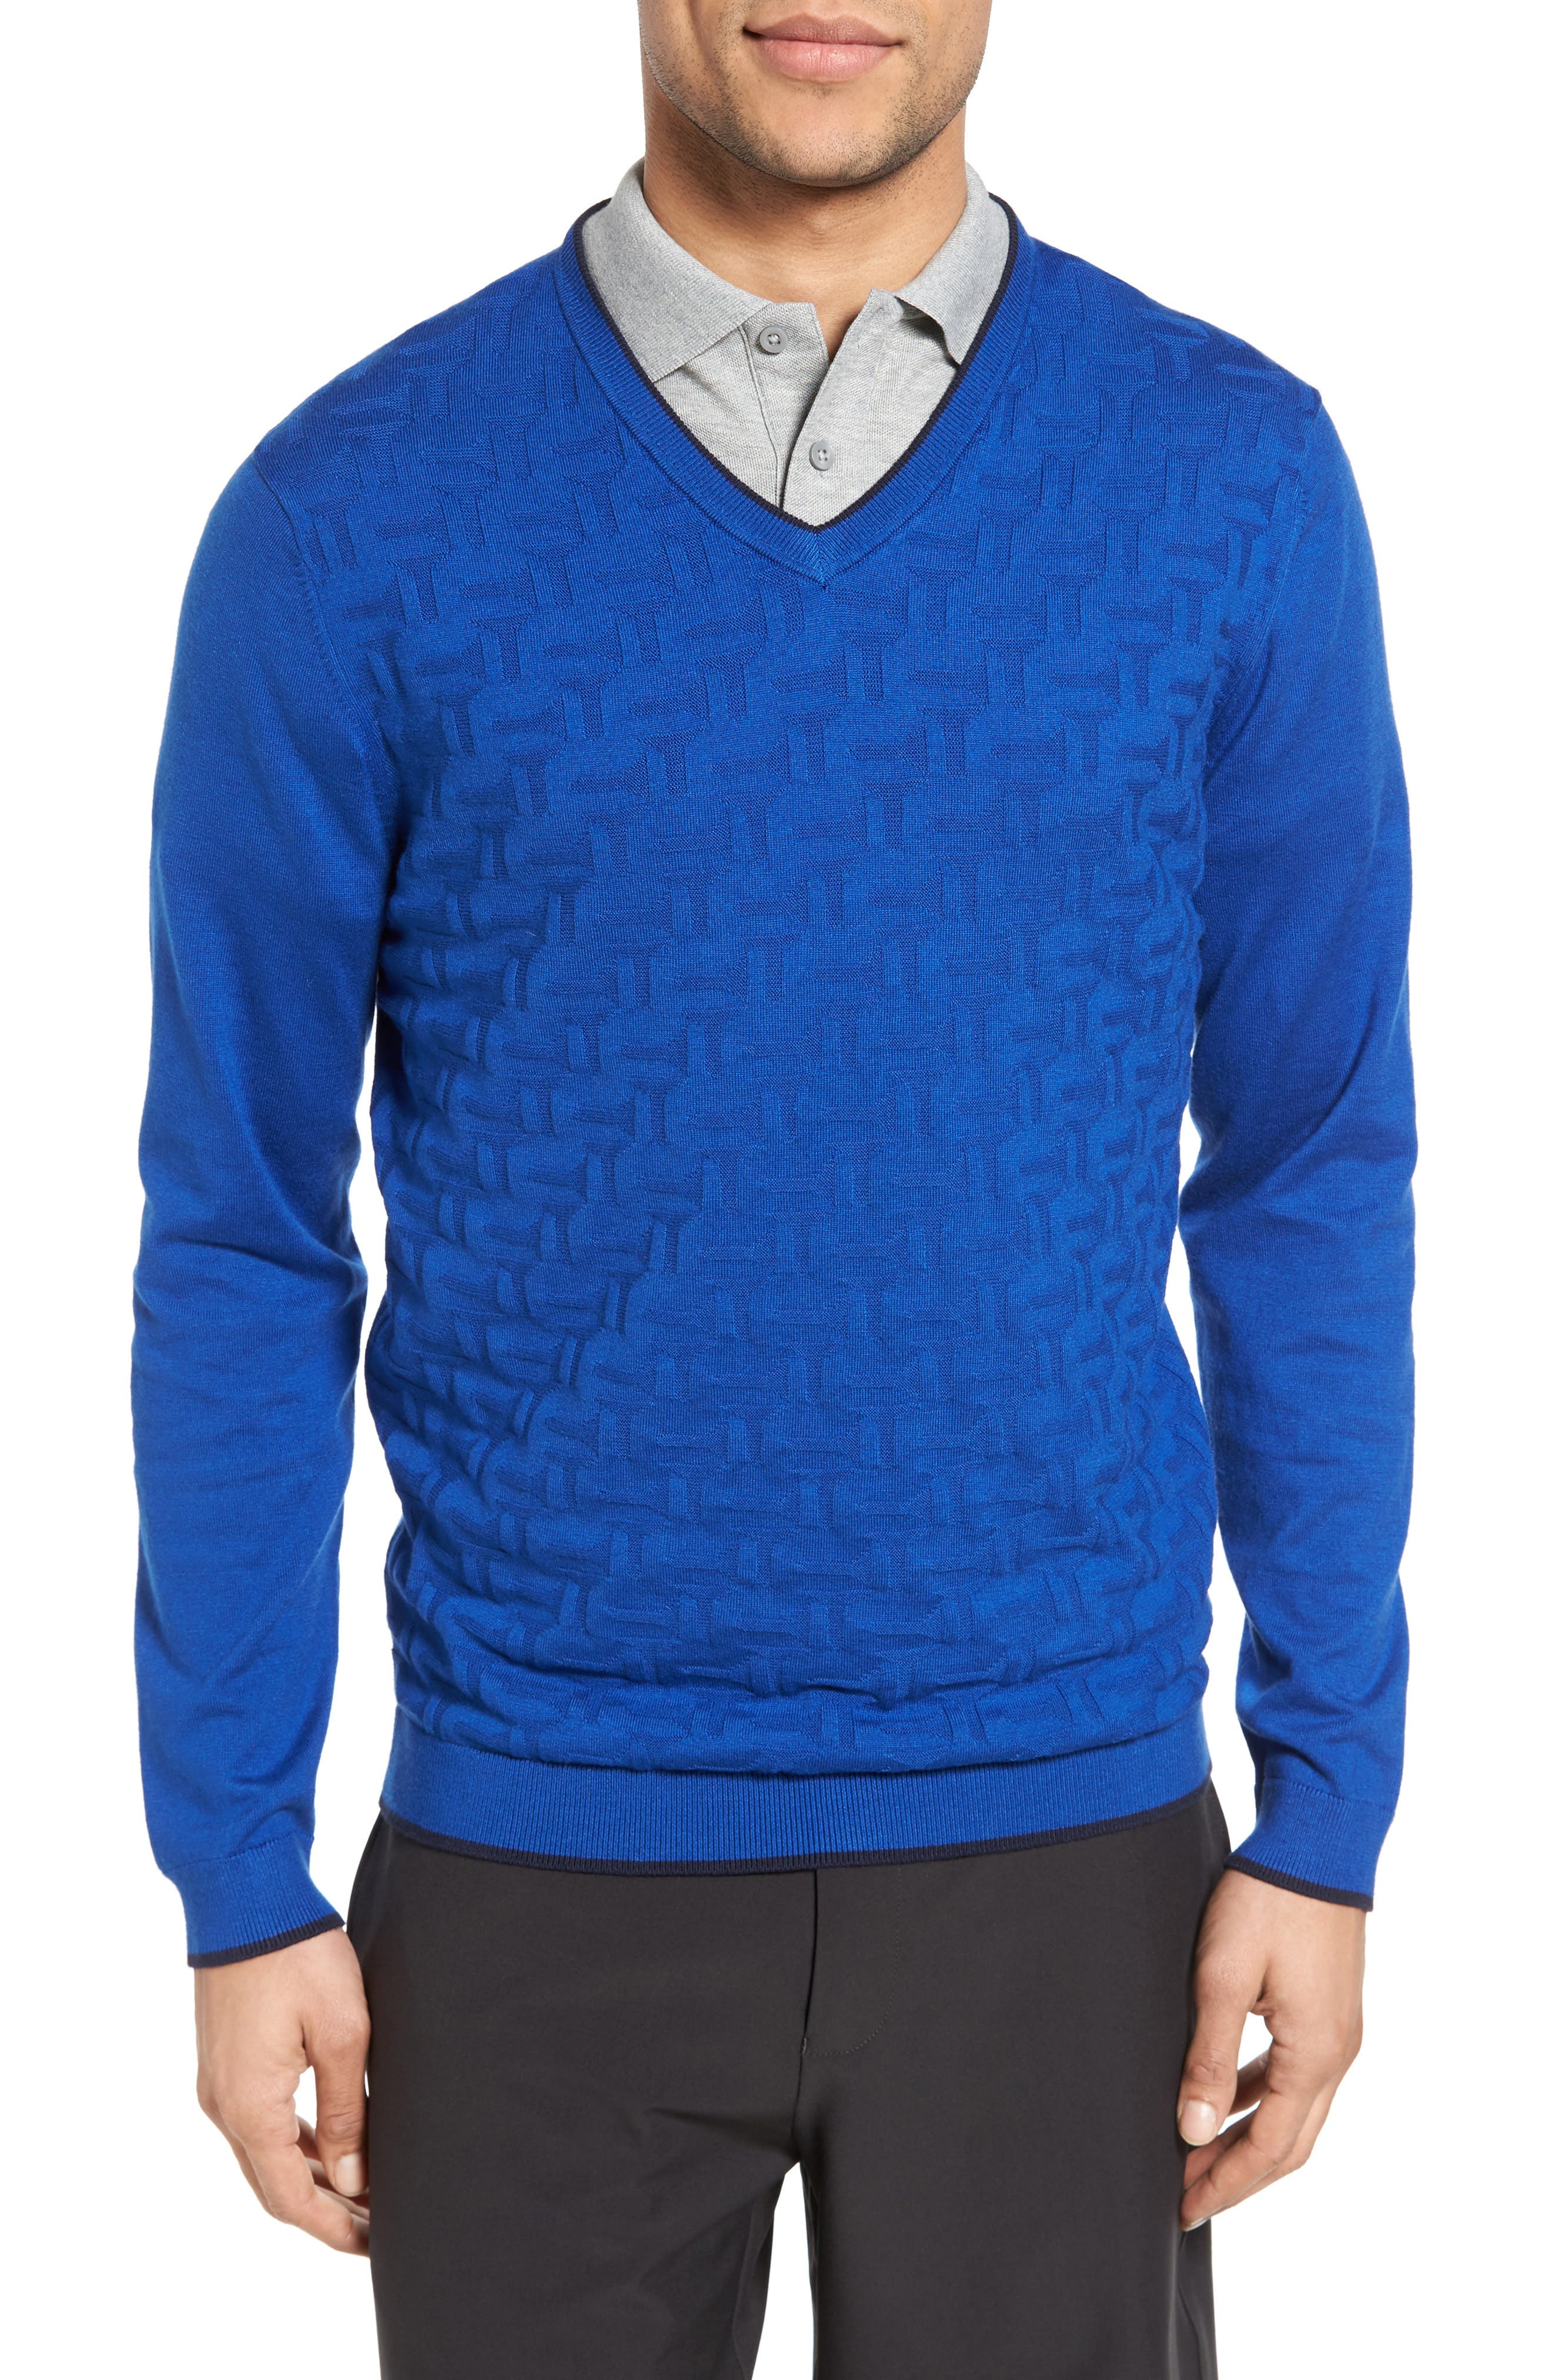 Main Image - Ted Baker London Armstro Tipped Golf Tee Sweater